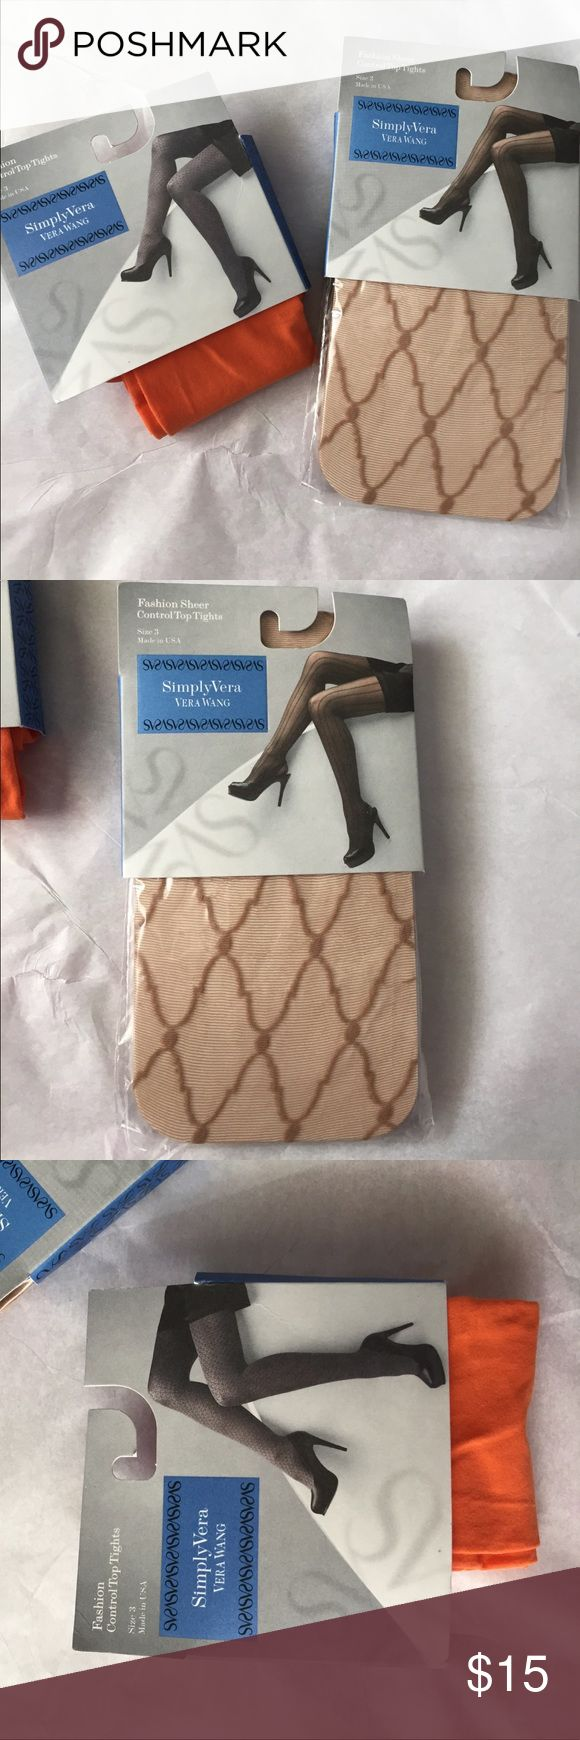 Simply Vera Wang Plus size control top tights! NWT 2 pairs of Simply Vera Vera Wang Fashion Control Top tights! 2 together! One pIr is sheer with a diamond design the other is a opaque orange color! Both new! Size 3  height 5'2-6'0 weight 165-200 lbs! Simply Vera Vera Wang Accessories Hosiery & Socks